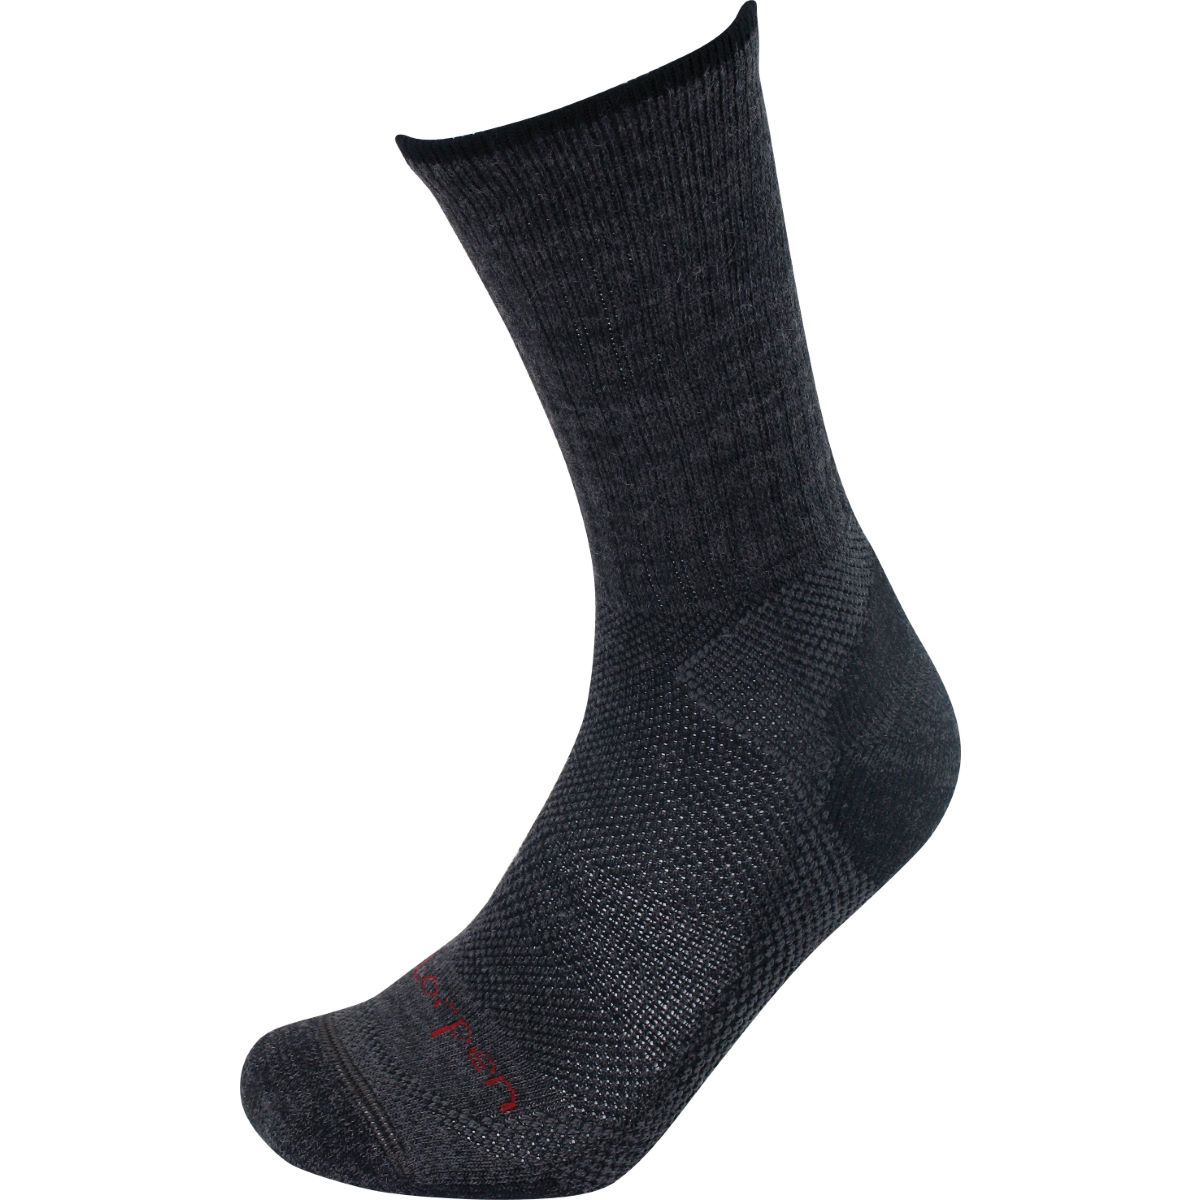 Chaussettes Lorpen Merino Blend Light Hiker (lot de 2) - XL CHARCOAL